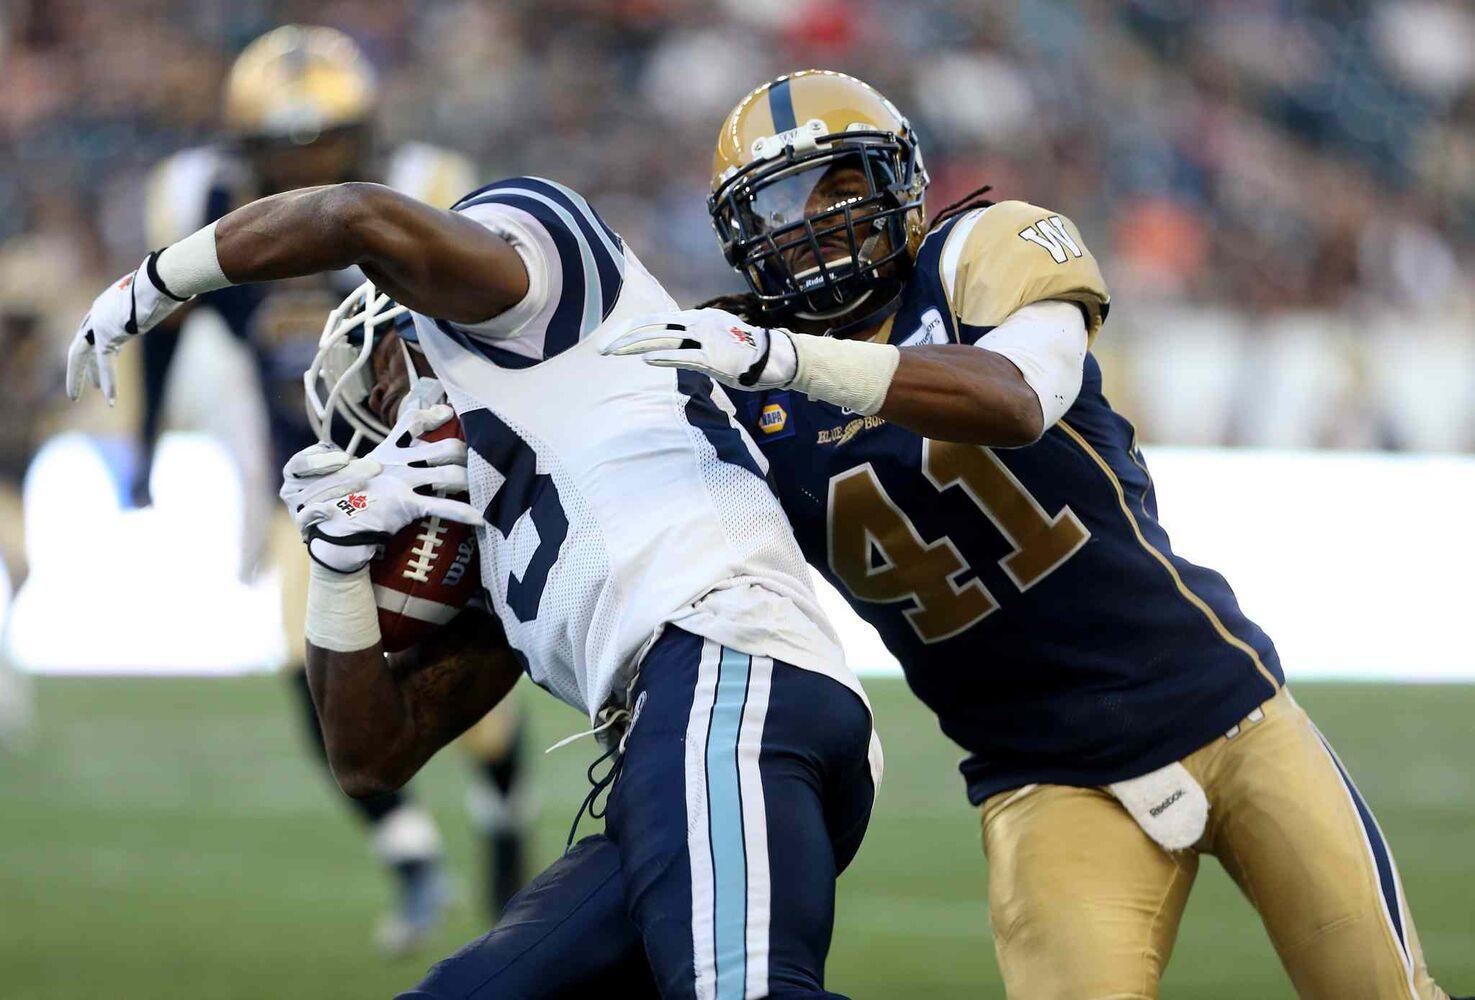 Toronto's Terrell Sinkfield spins off of Winnipeg's Don Unamba during the first half.